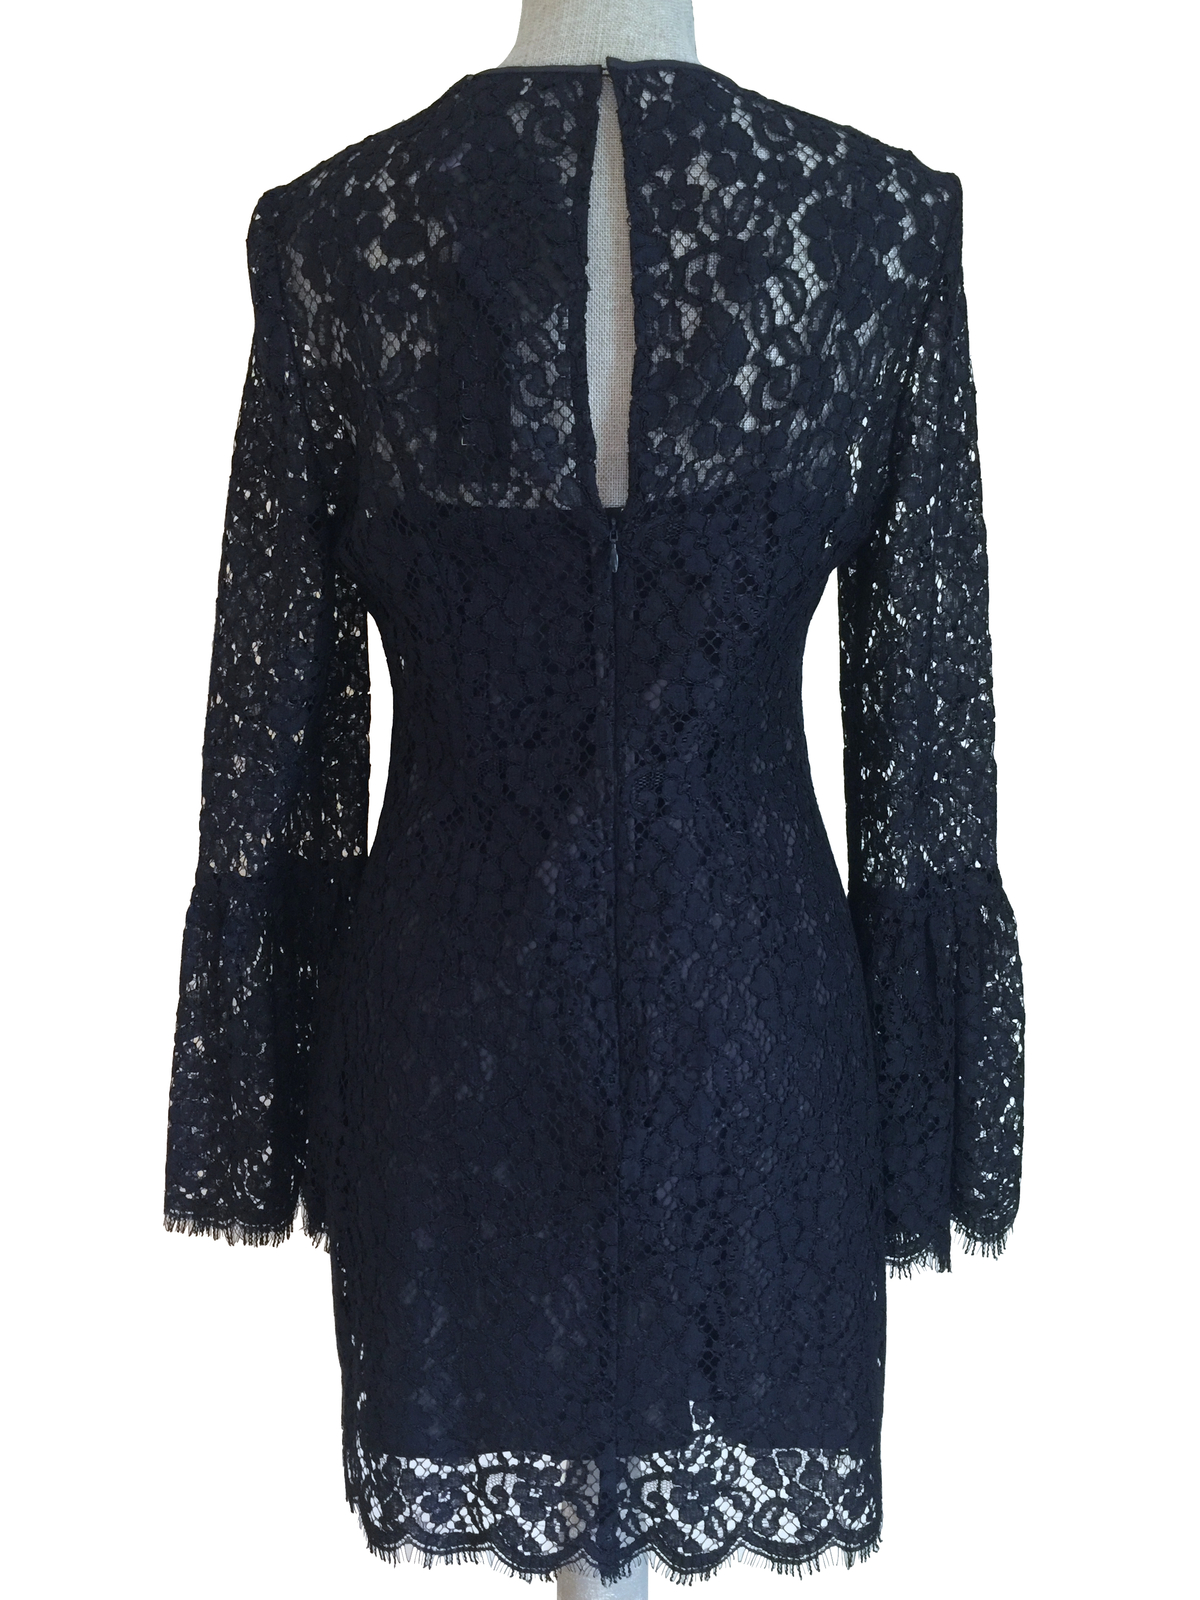 05fedf1db3b NWT  395 RACHEL ZOE Carter Navy Blue Bell Sleeve Lace Mini Shift Sheath  Dress 6